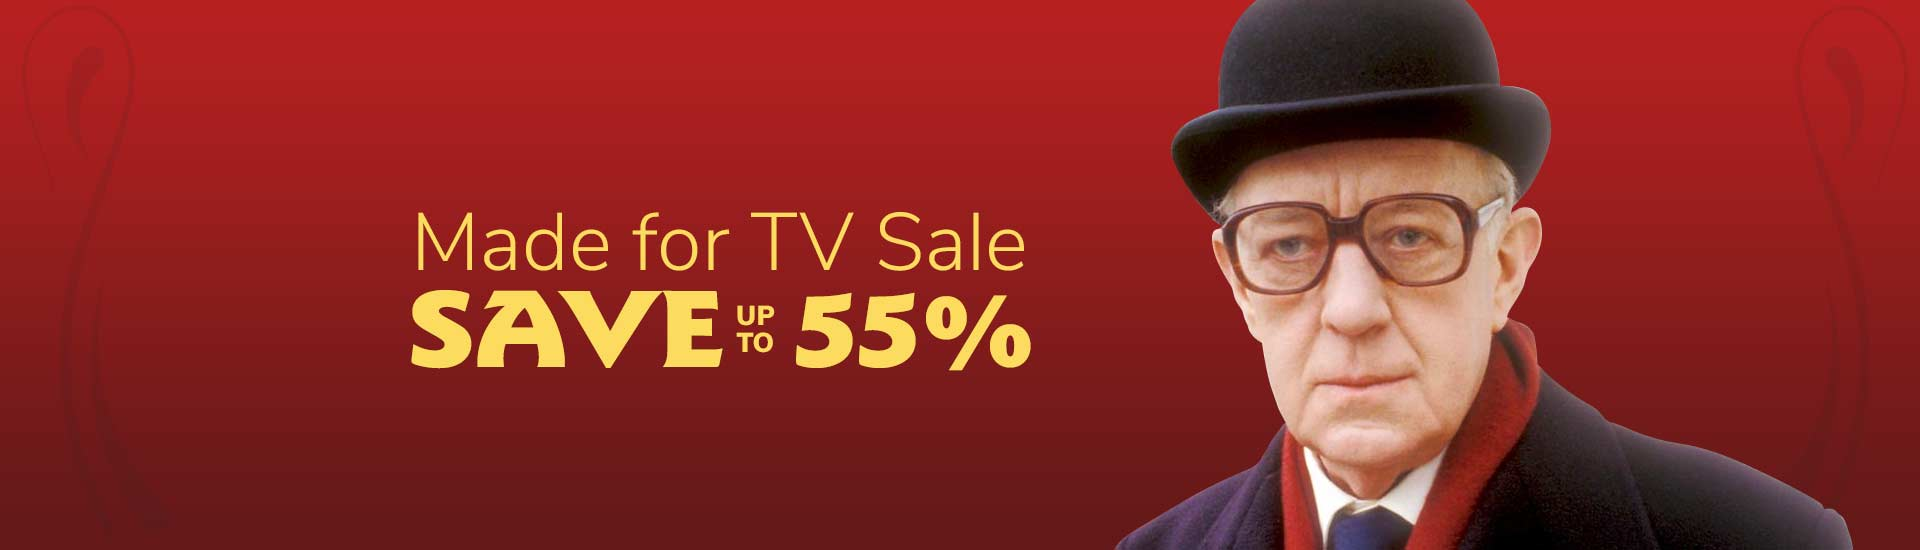 Made for TV Movie Sale